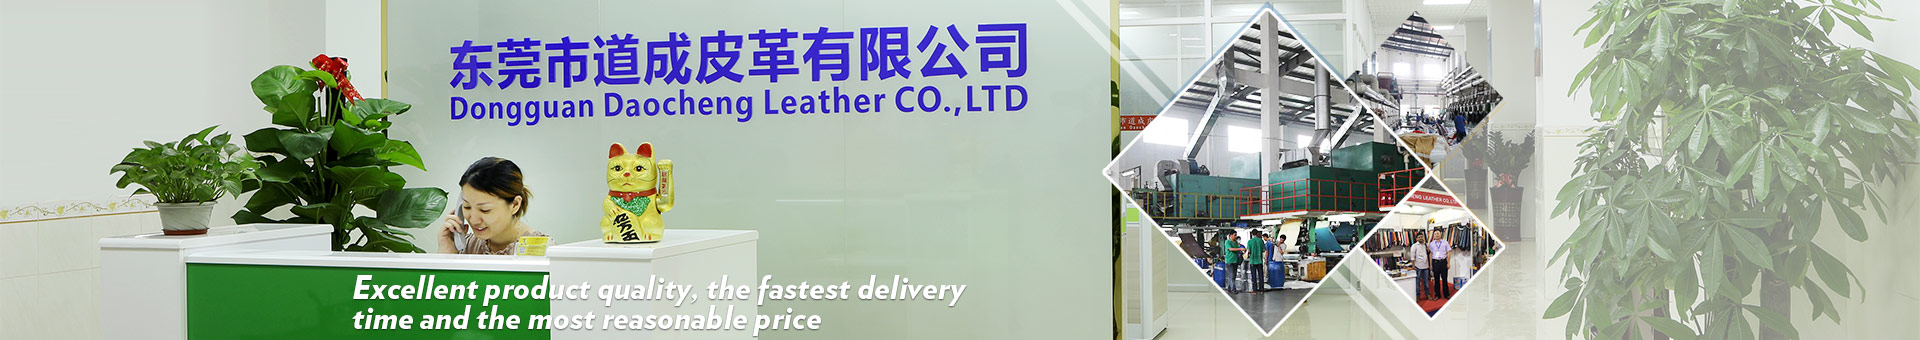 Dongguan Daocheng Leather Co., LTD